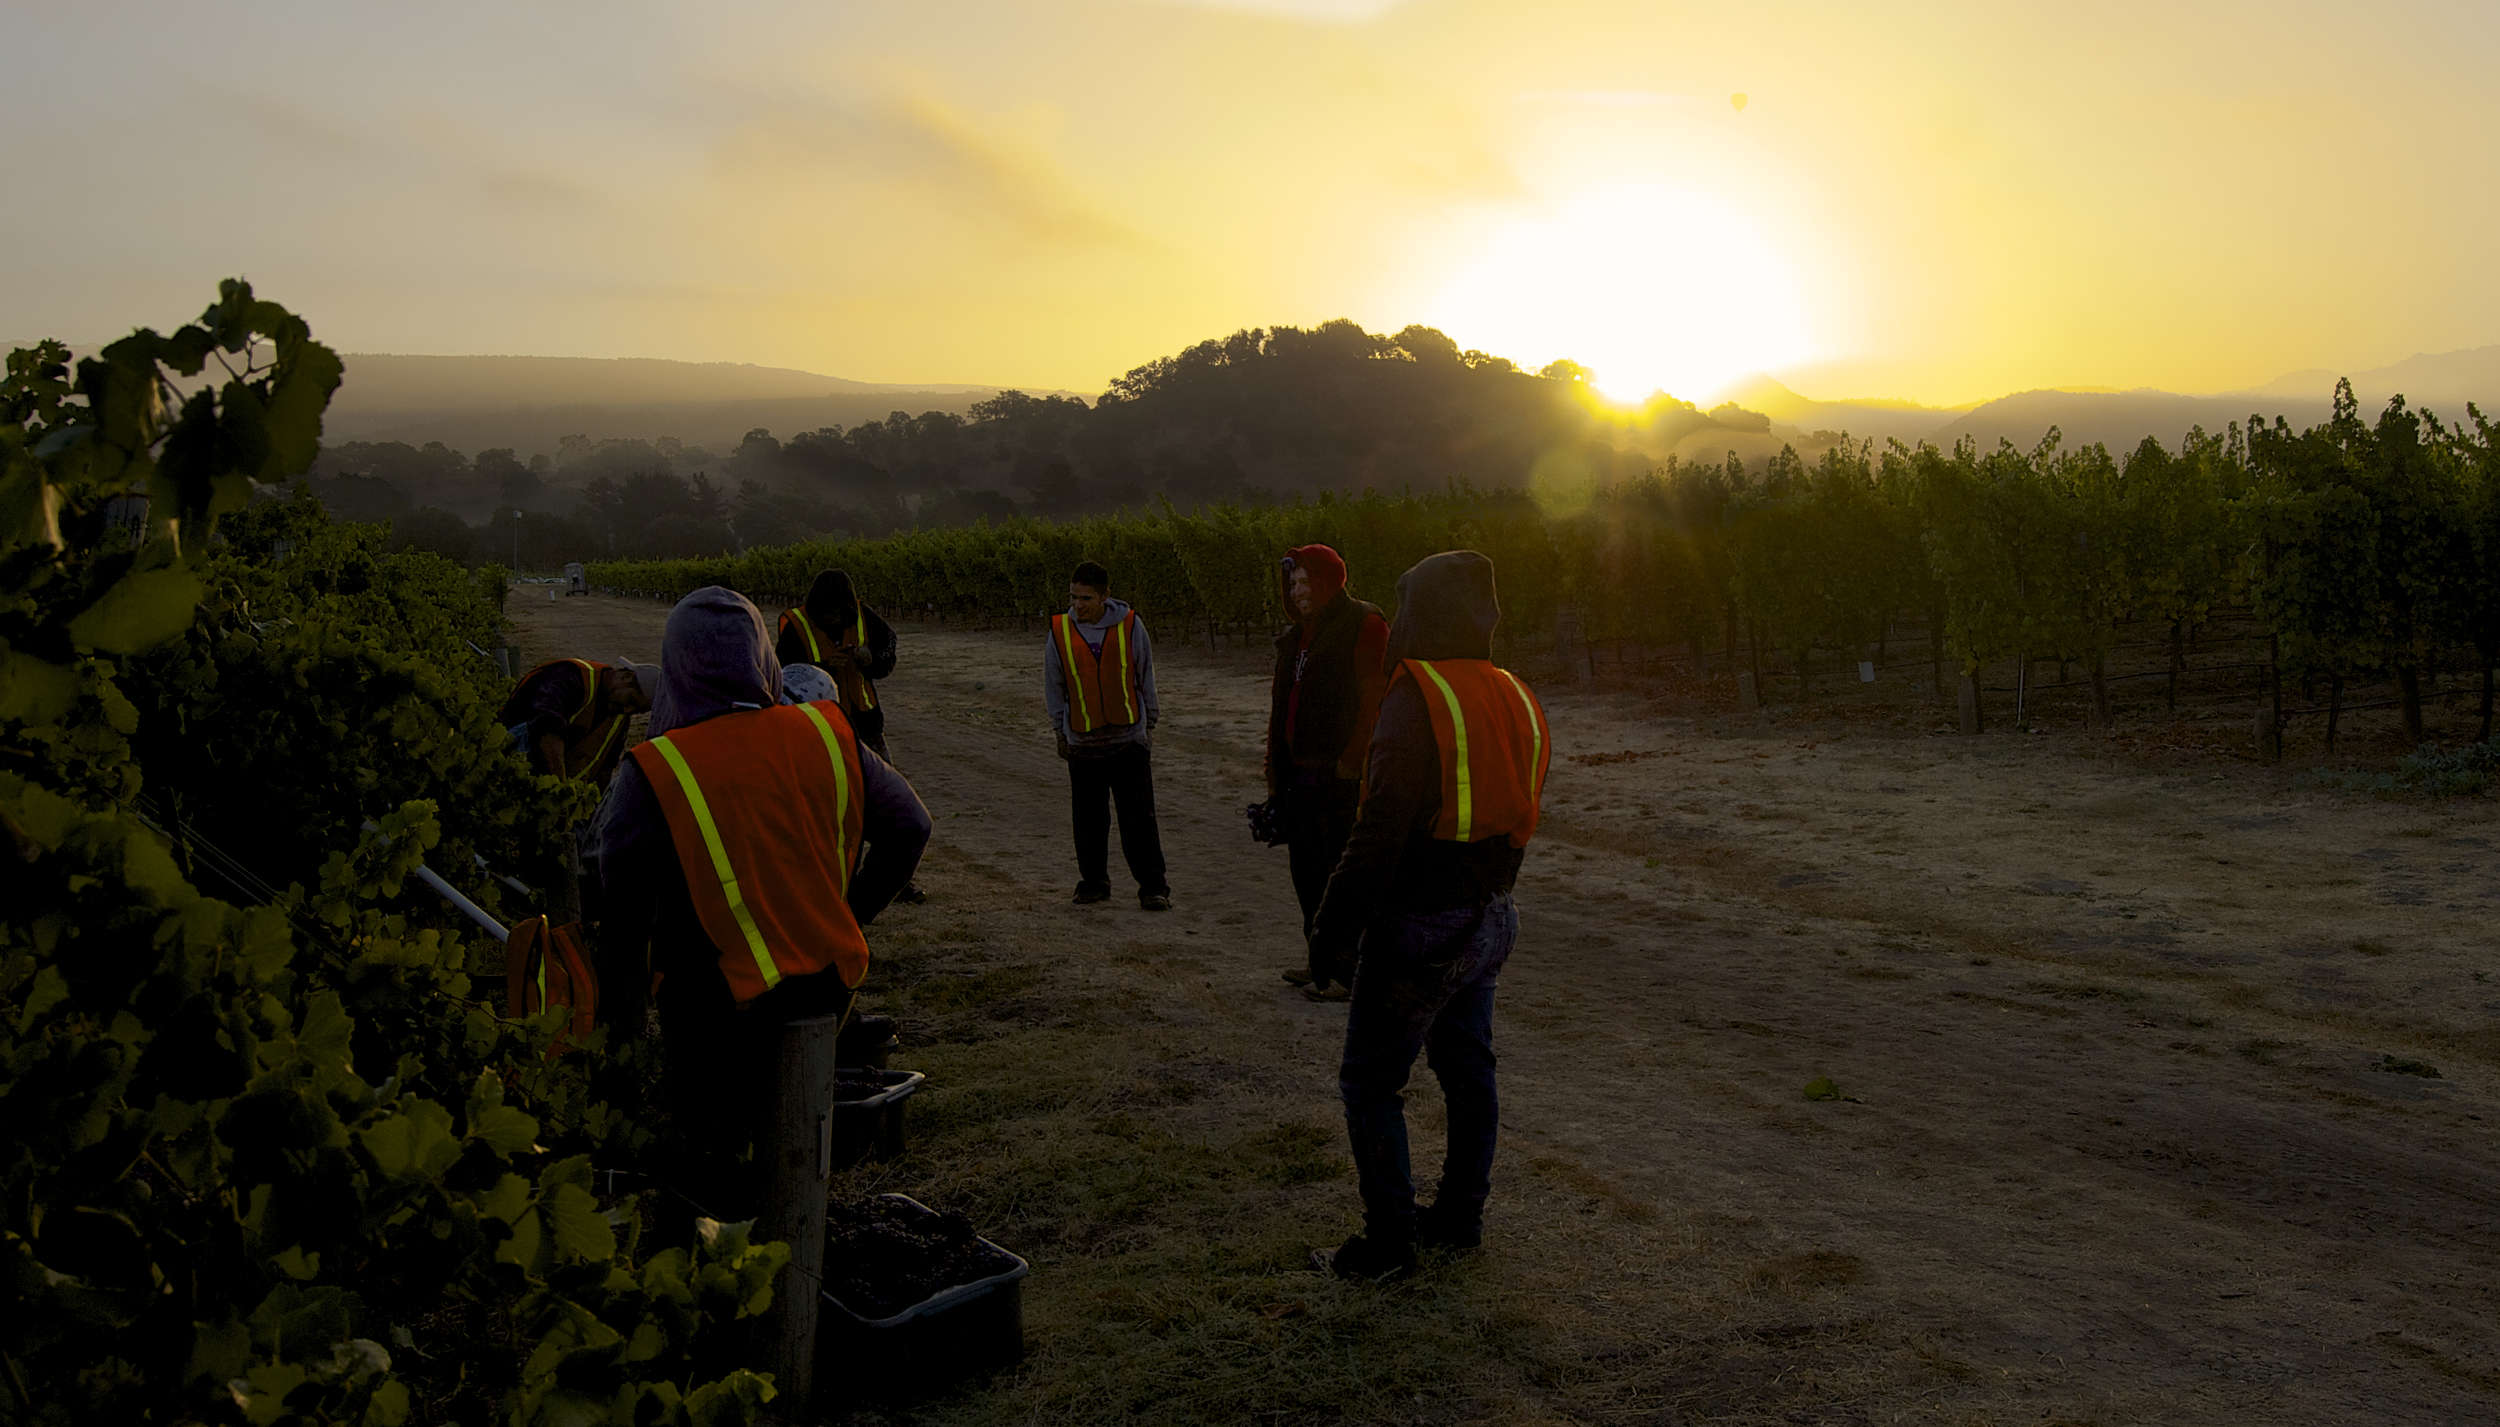 The harvest crew takes a break while waiting for the tractor to bring more bins. This is the first day of the Cornerstone Cellars 2012 Napa Valley harvest and they're picking Oakville Pinot Gris.